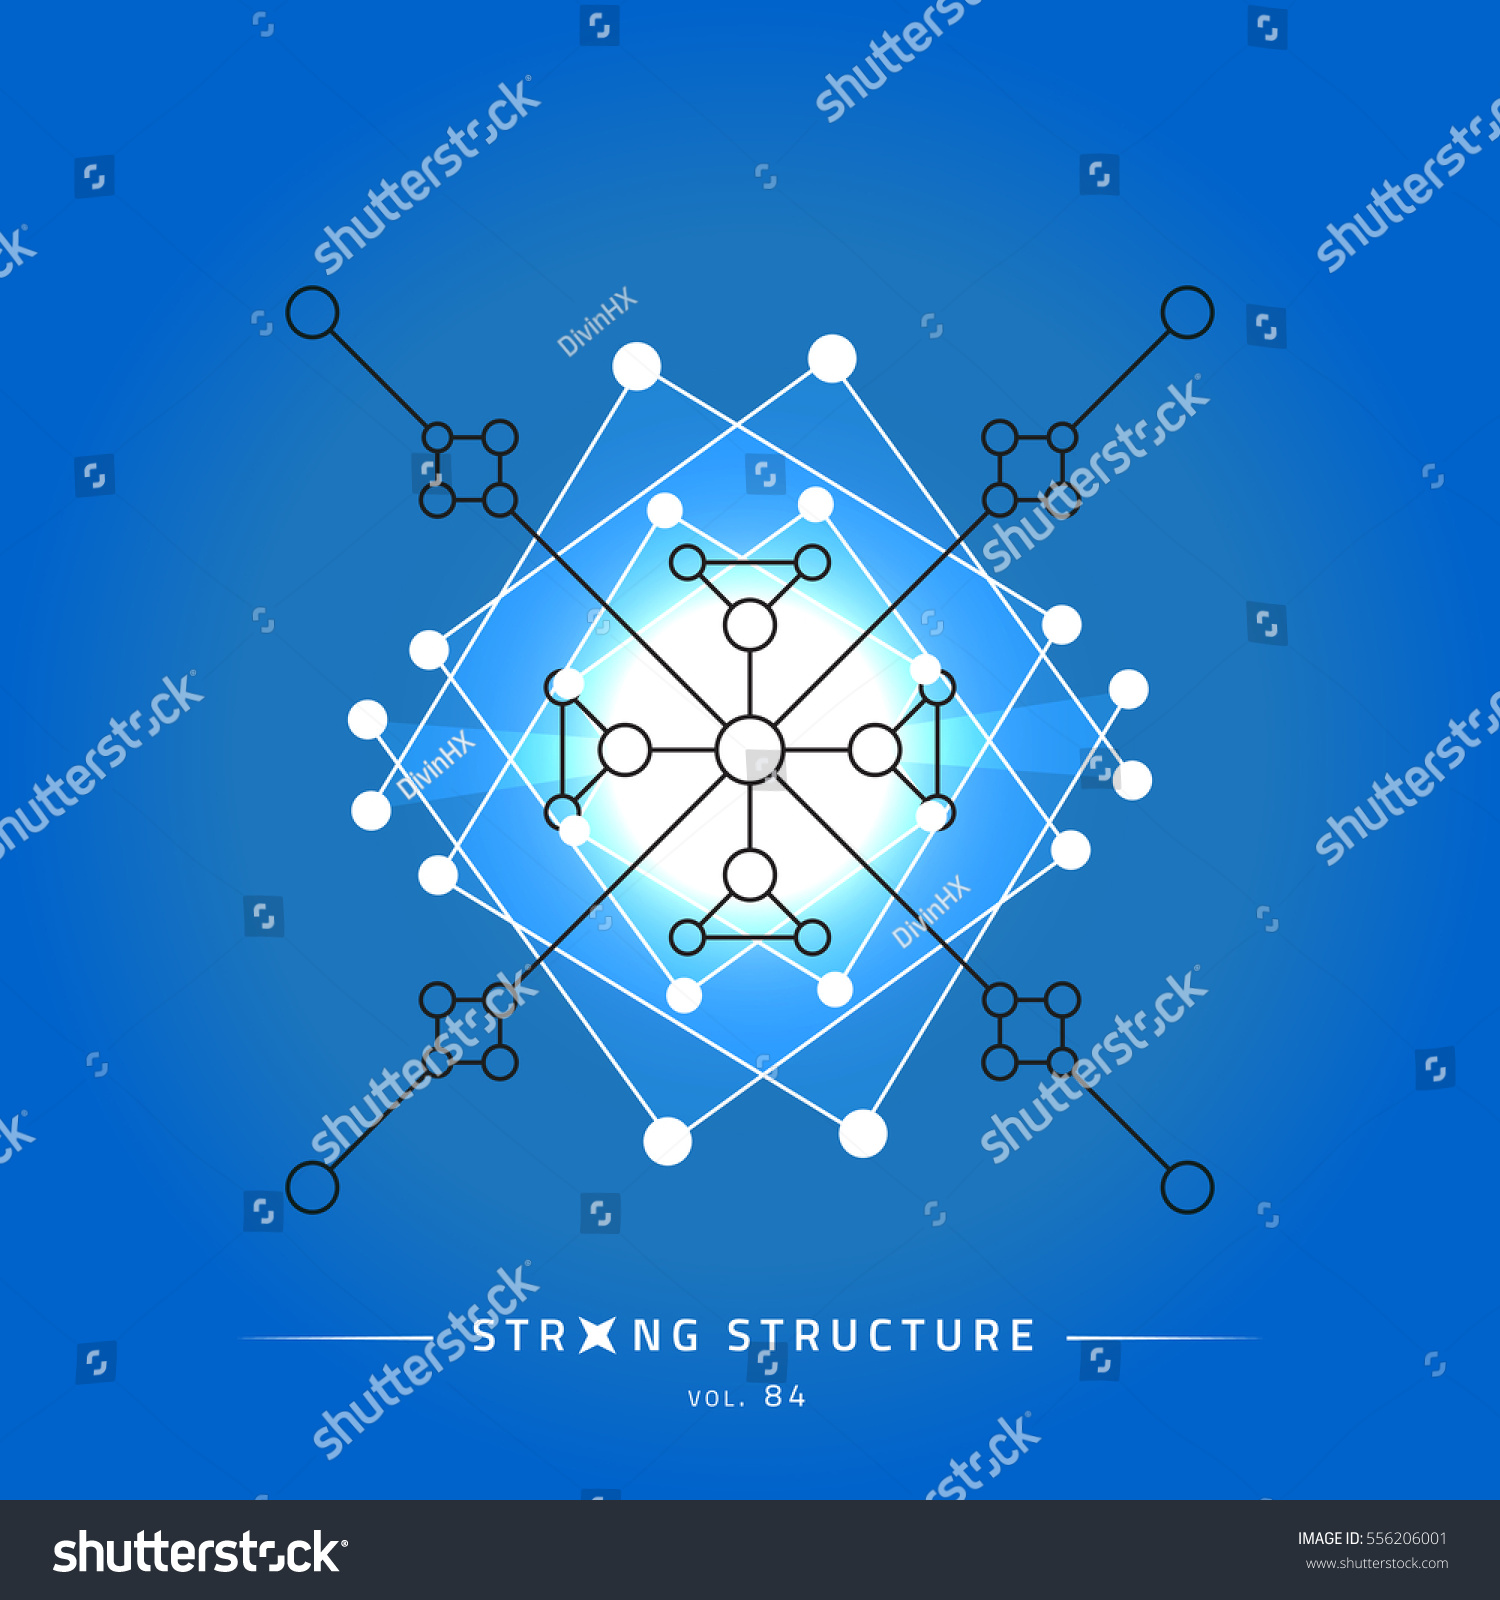 Stroke Linear Isolated Geometric Figure Scientific Stock Vector